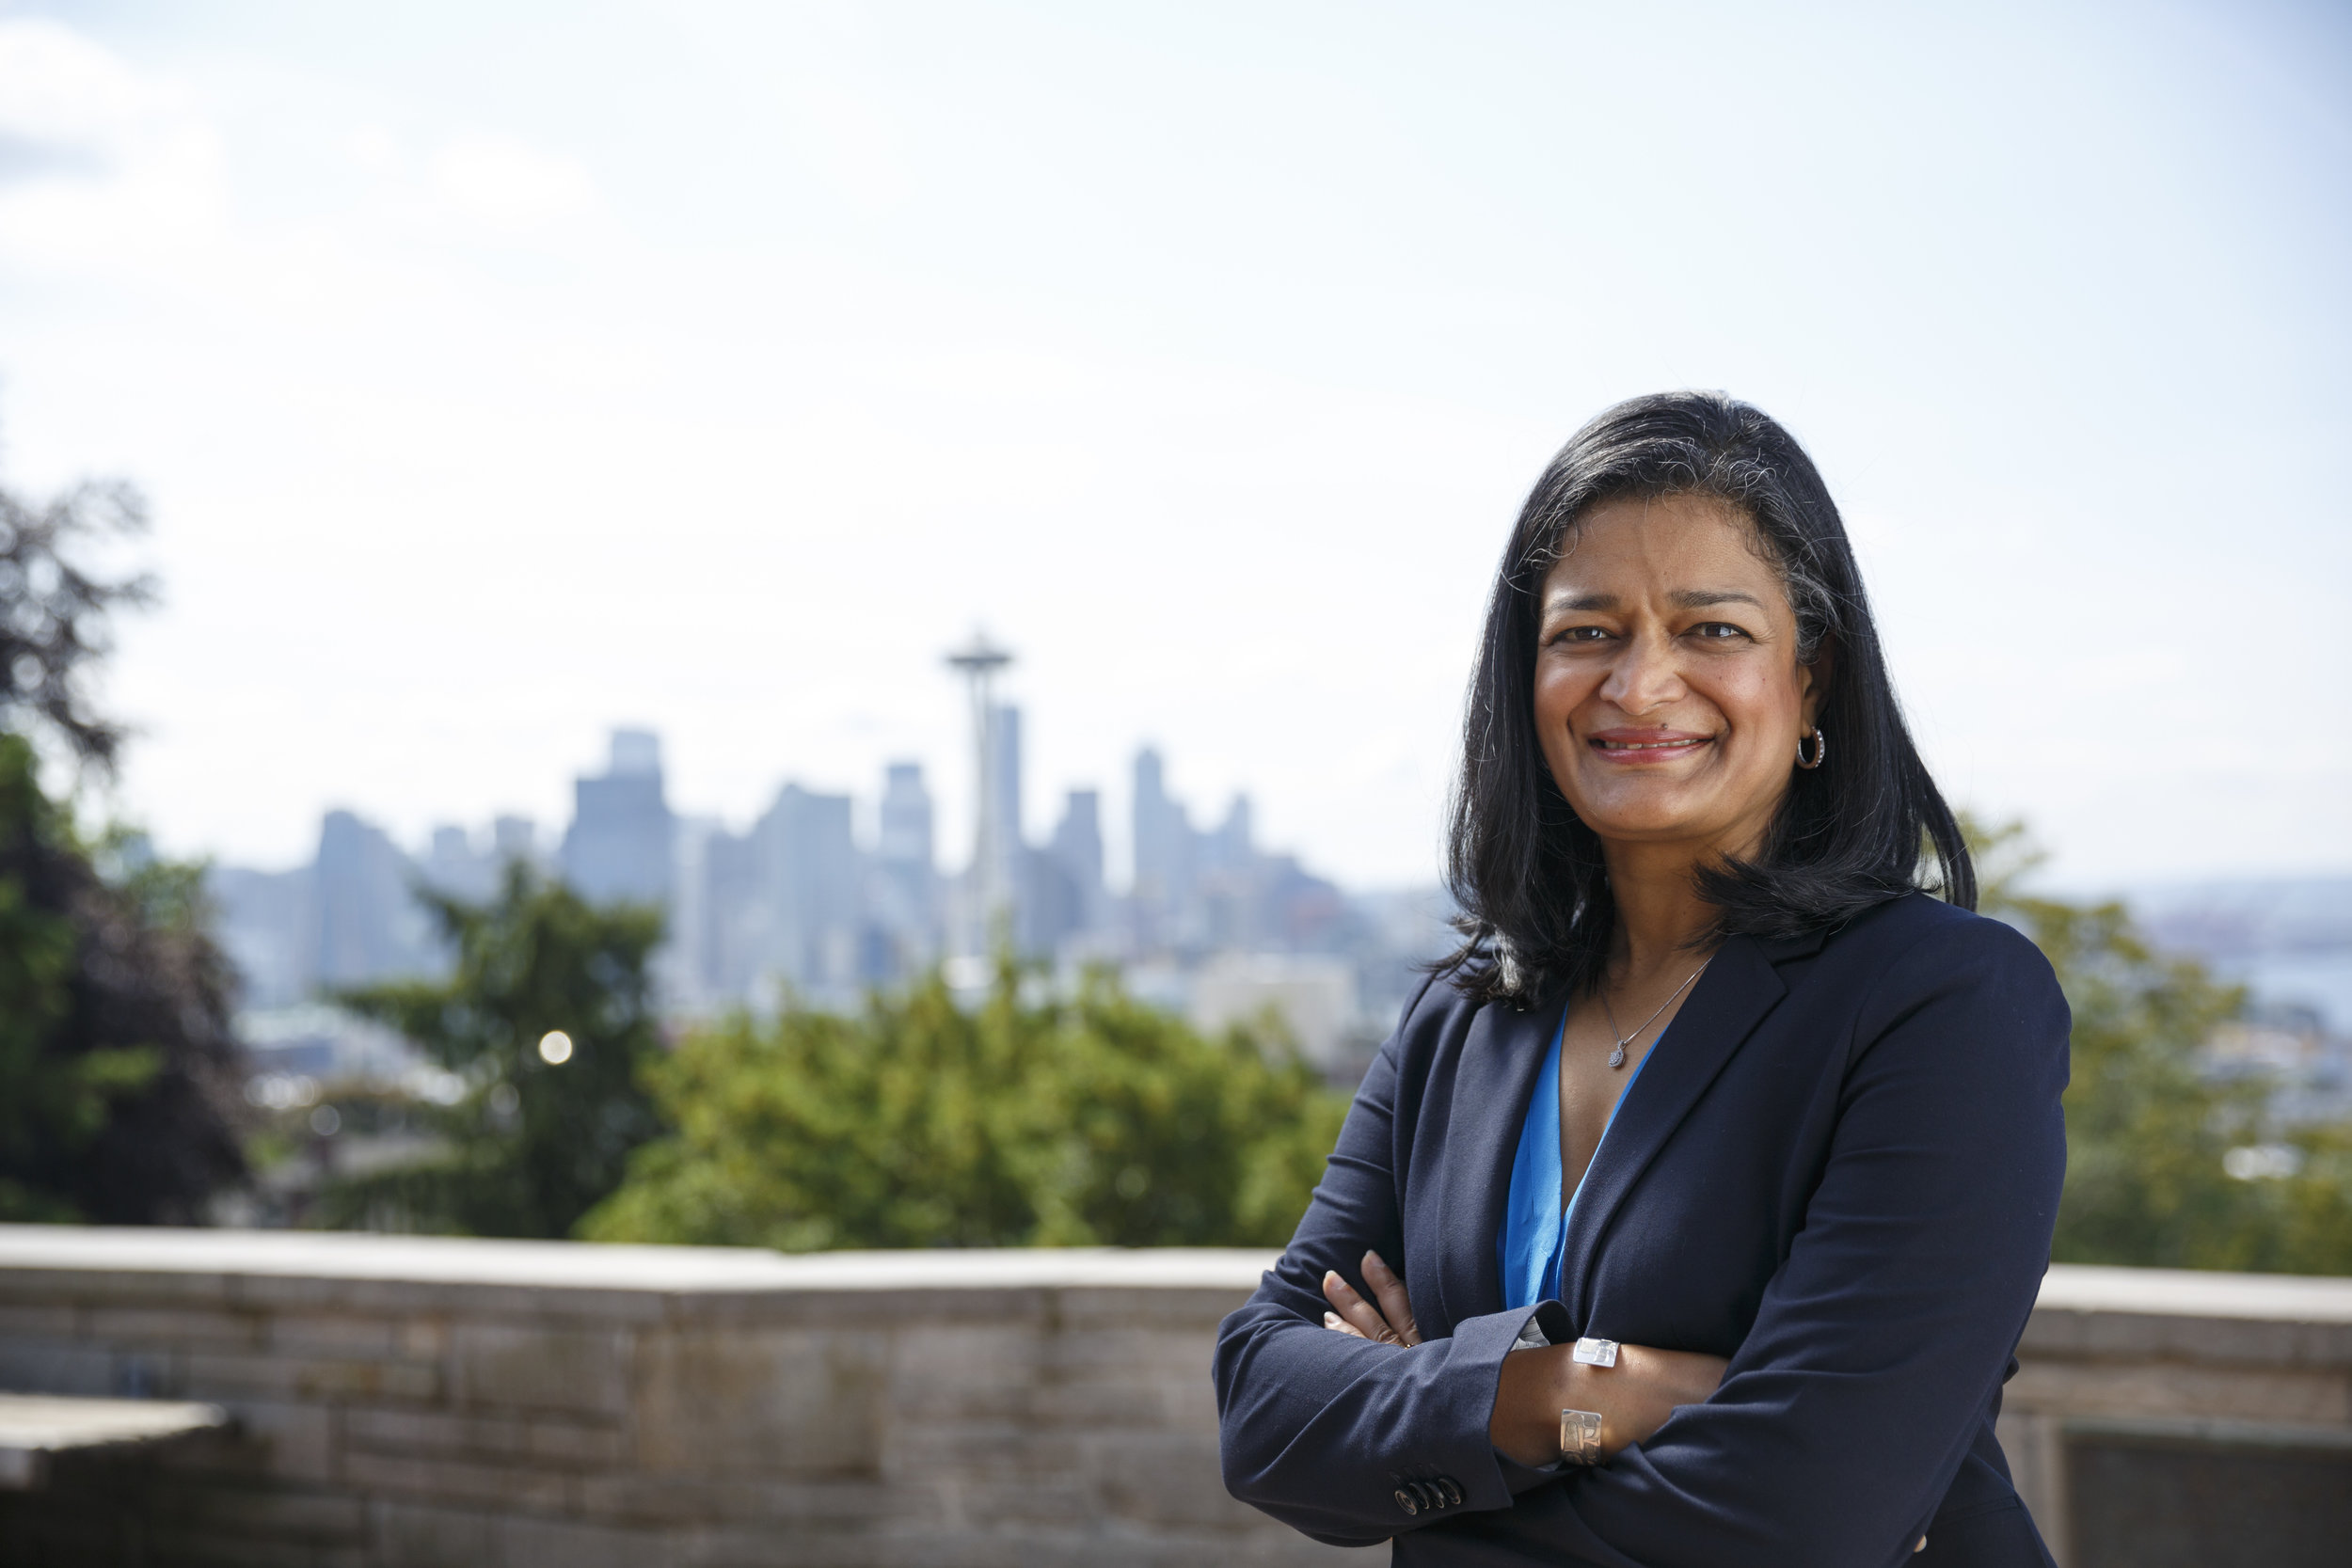 Pramila Jayapal heads to Congress